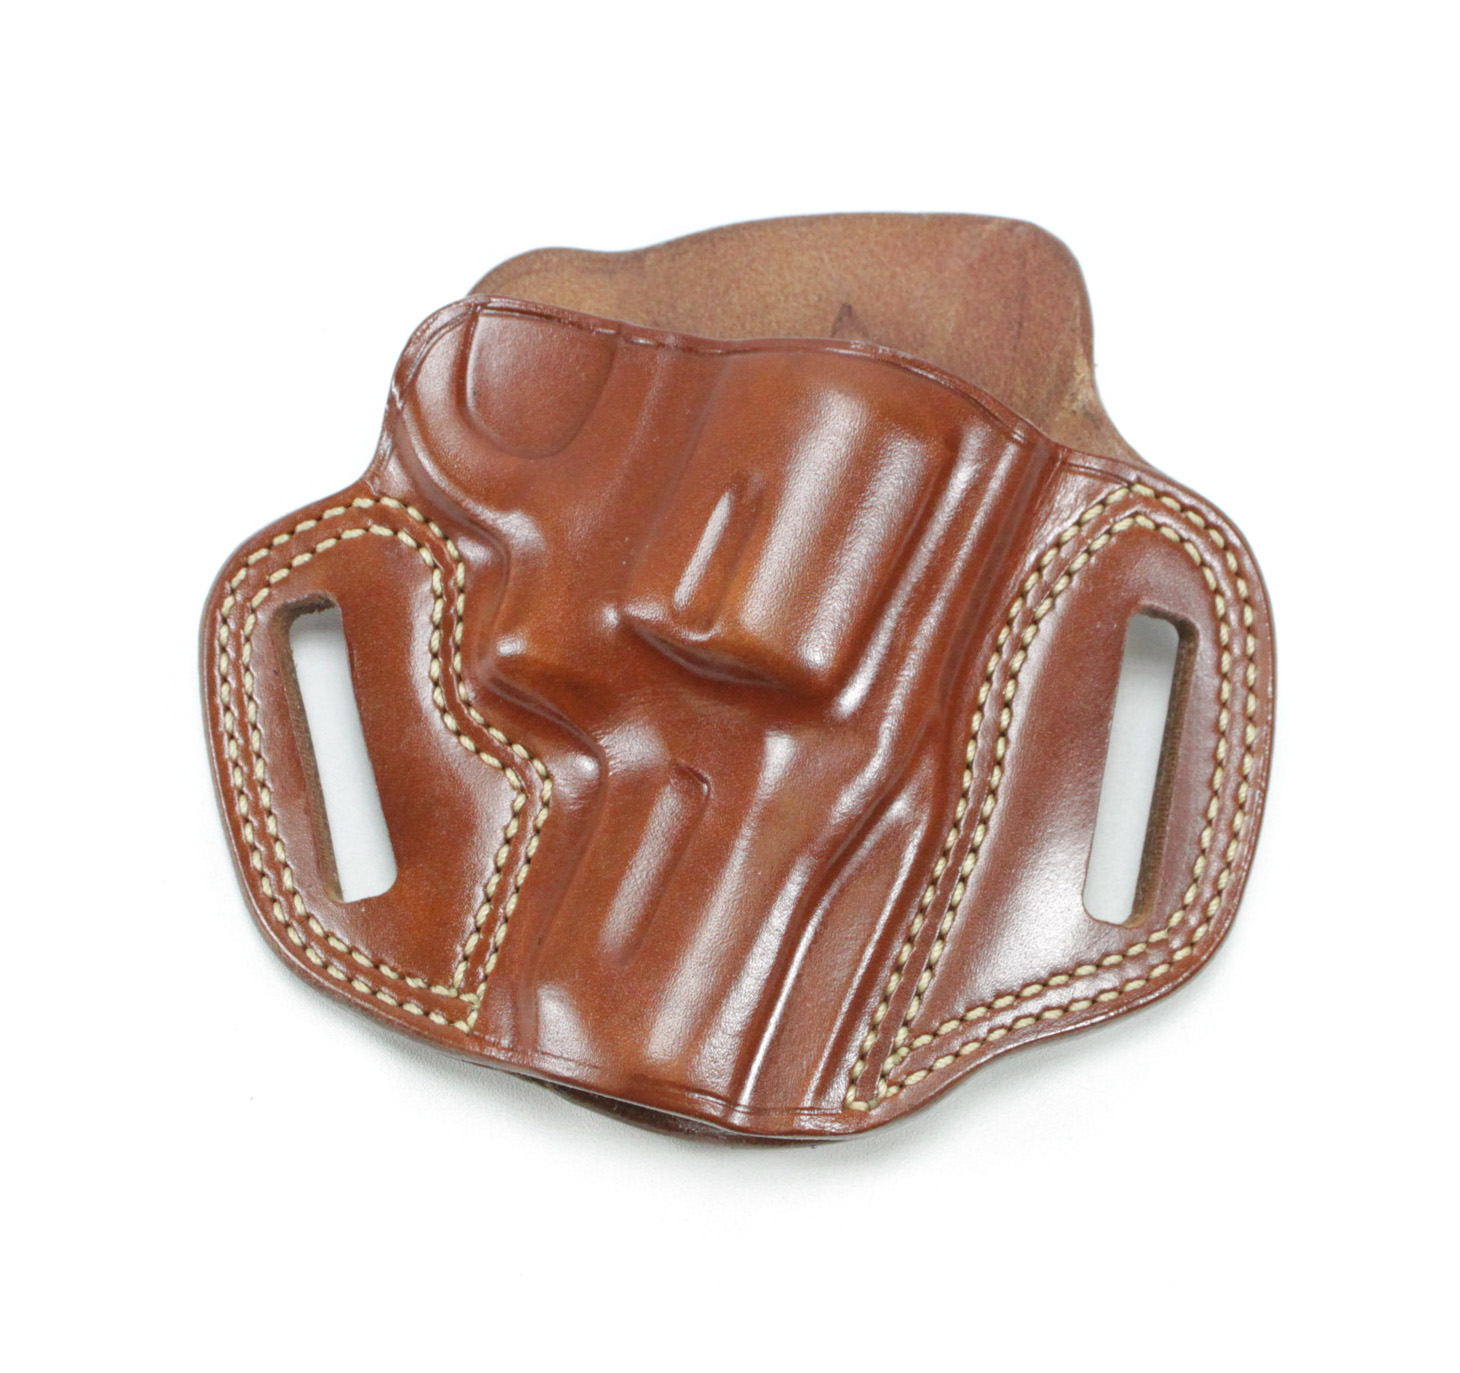 Galco CM158 Combat Master Belt Holster S&W J-Frame Revolvers Models 442,  642, 340PD, 351PD and More!